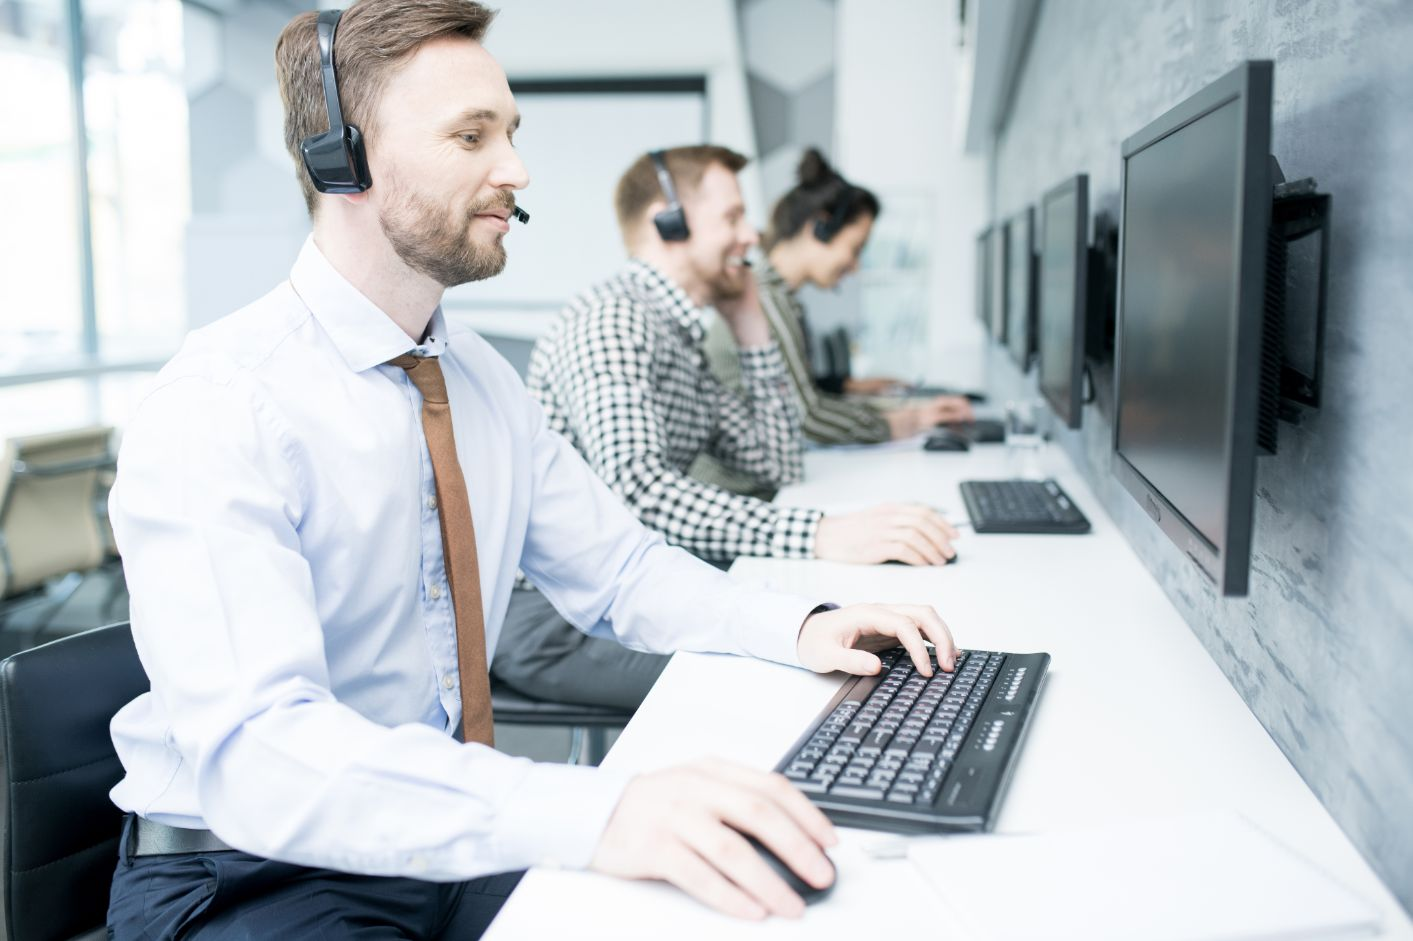 7 key customer service skills (and how to develop them)